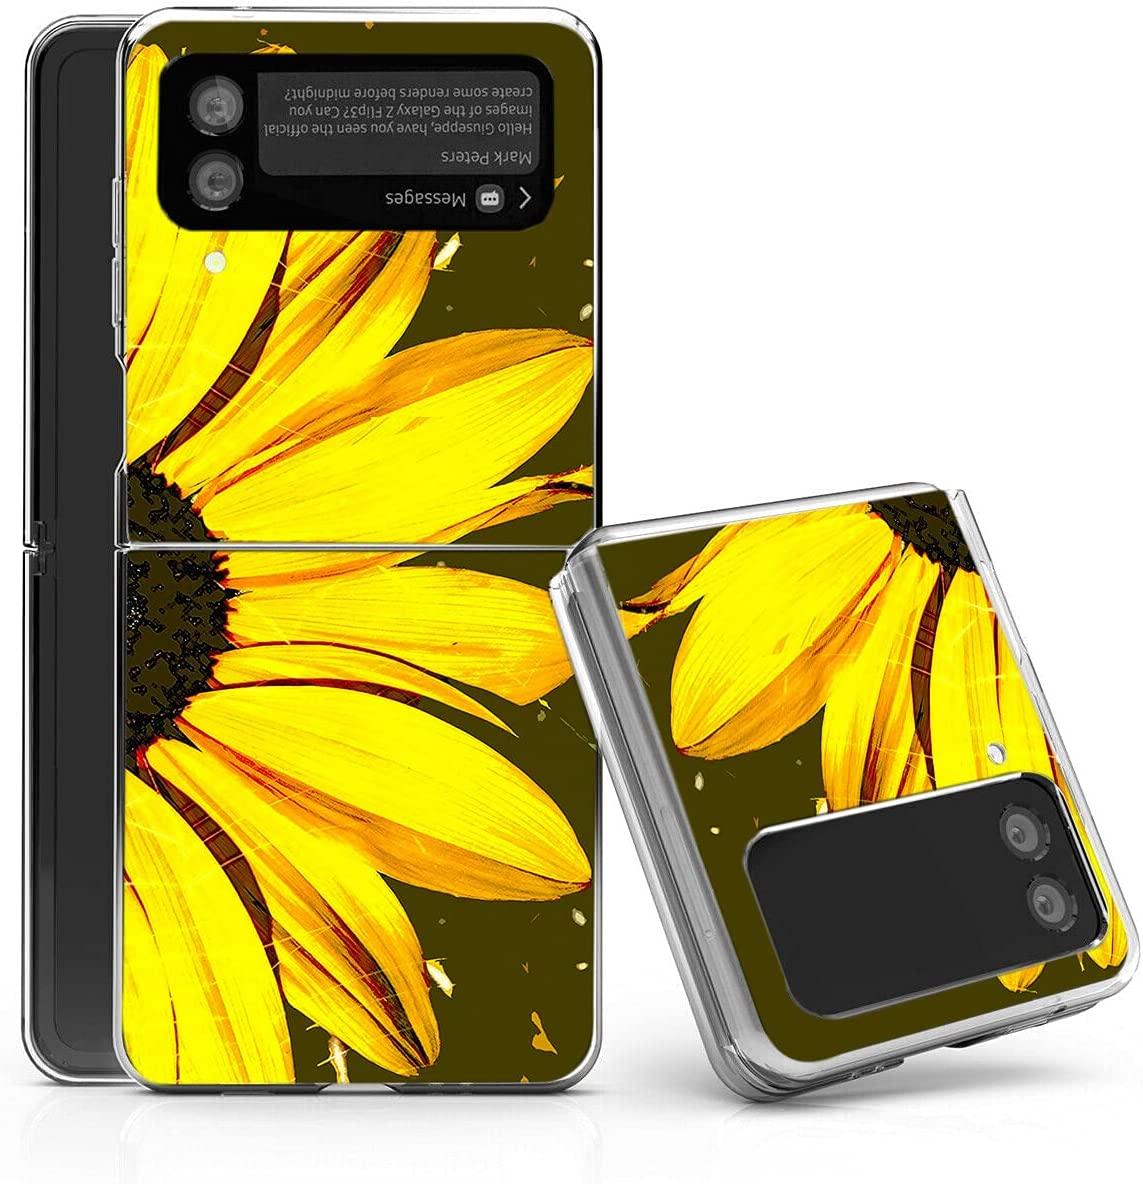 Galaxy Z Flip 3 5G Case,Bcov Sunflower Large Flower Anti-Scratch Solid Hard case Protective Shookproof Phone Cover for Samsung Galaxy Z Flip 3 5G